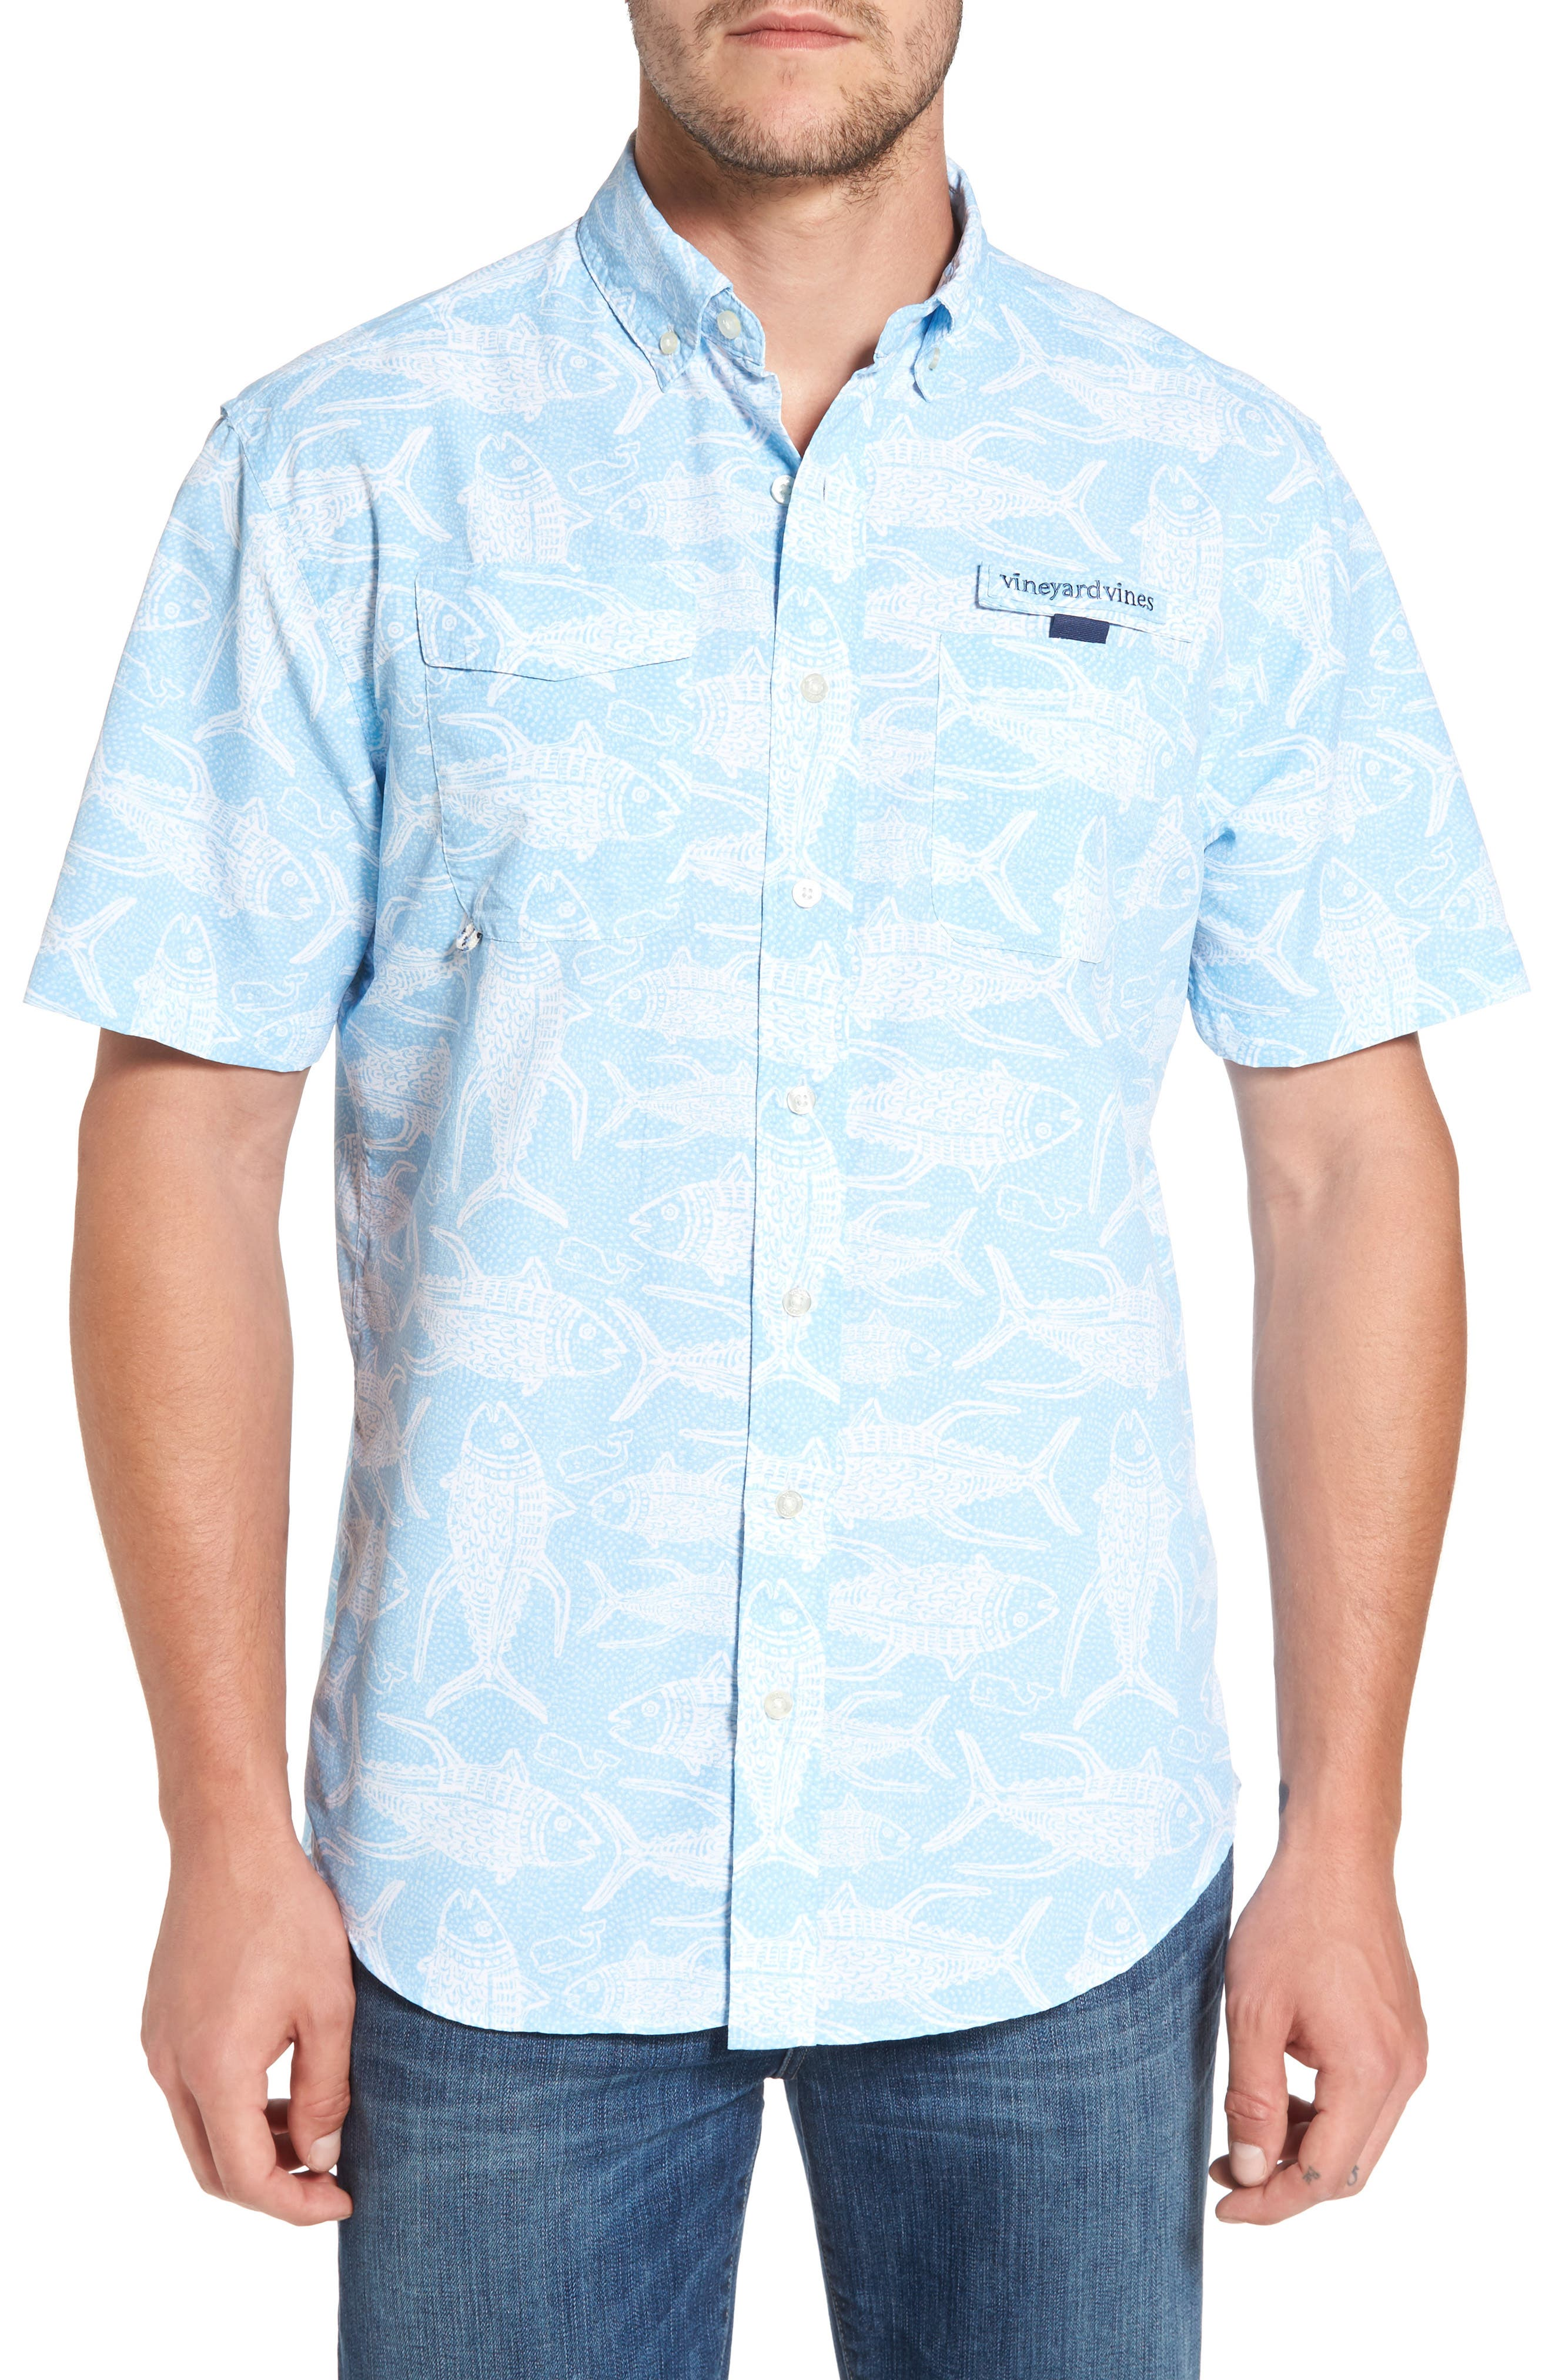 Alternate Image 1 Selected - Vineyard Vines Tuna Batic Harbor Short Sleeve Sport Shirt